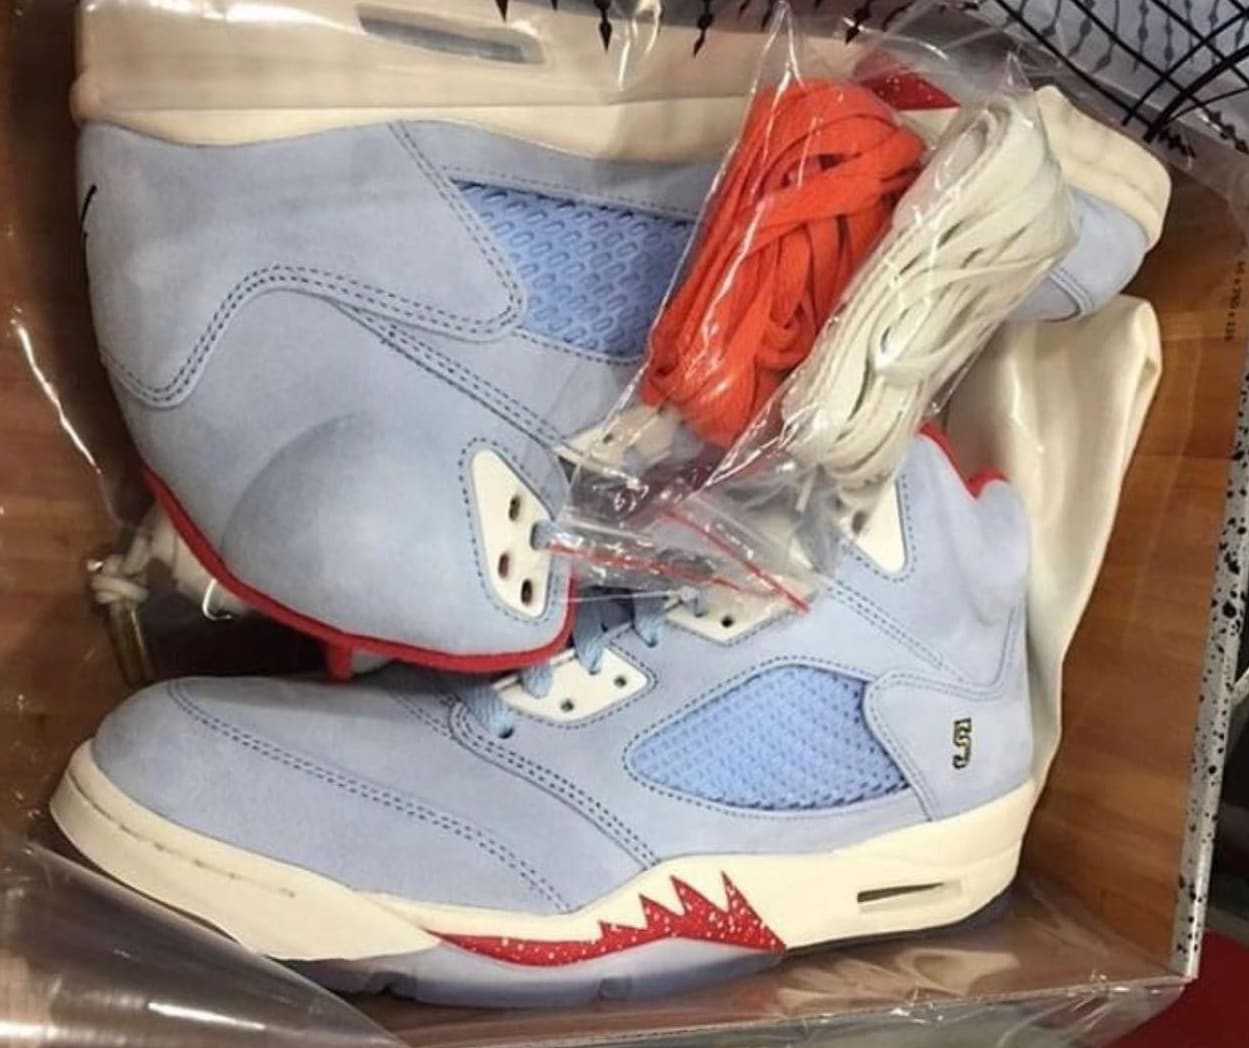 Trophy Room x Air Jordan 5 JSP 'Ice Blue/Sail-Metallic Gold-University Red'